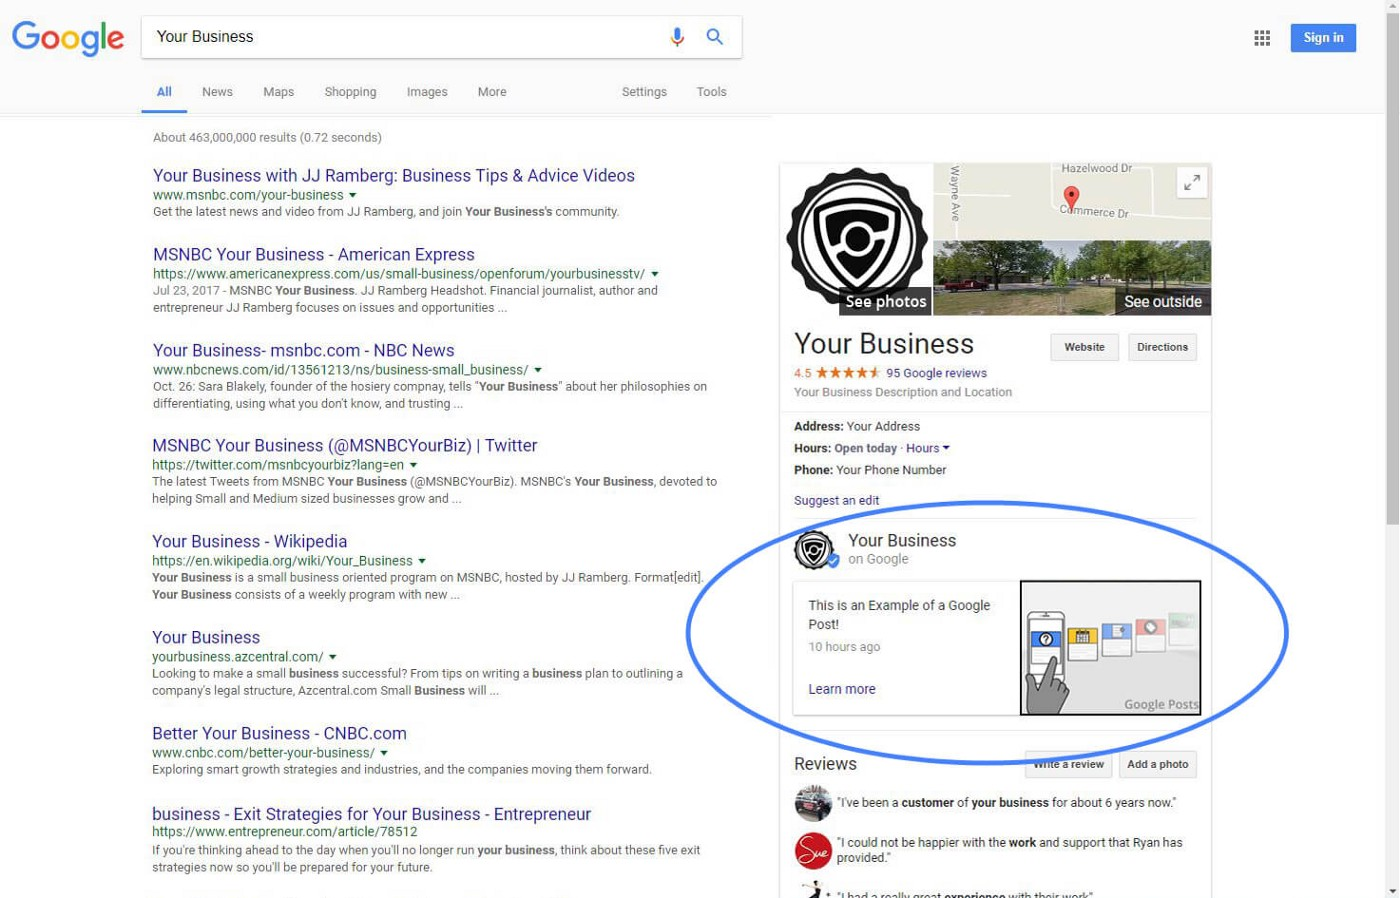 PUT YOUR BEST CONTENT FORWARD WITH GOOGLE POSTS